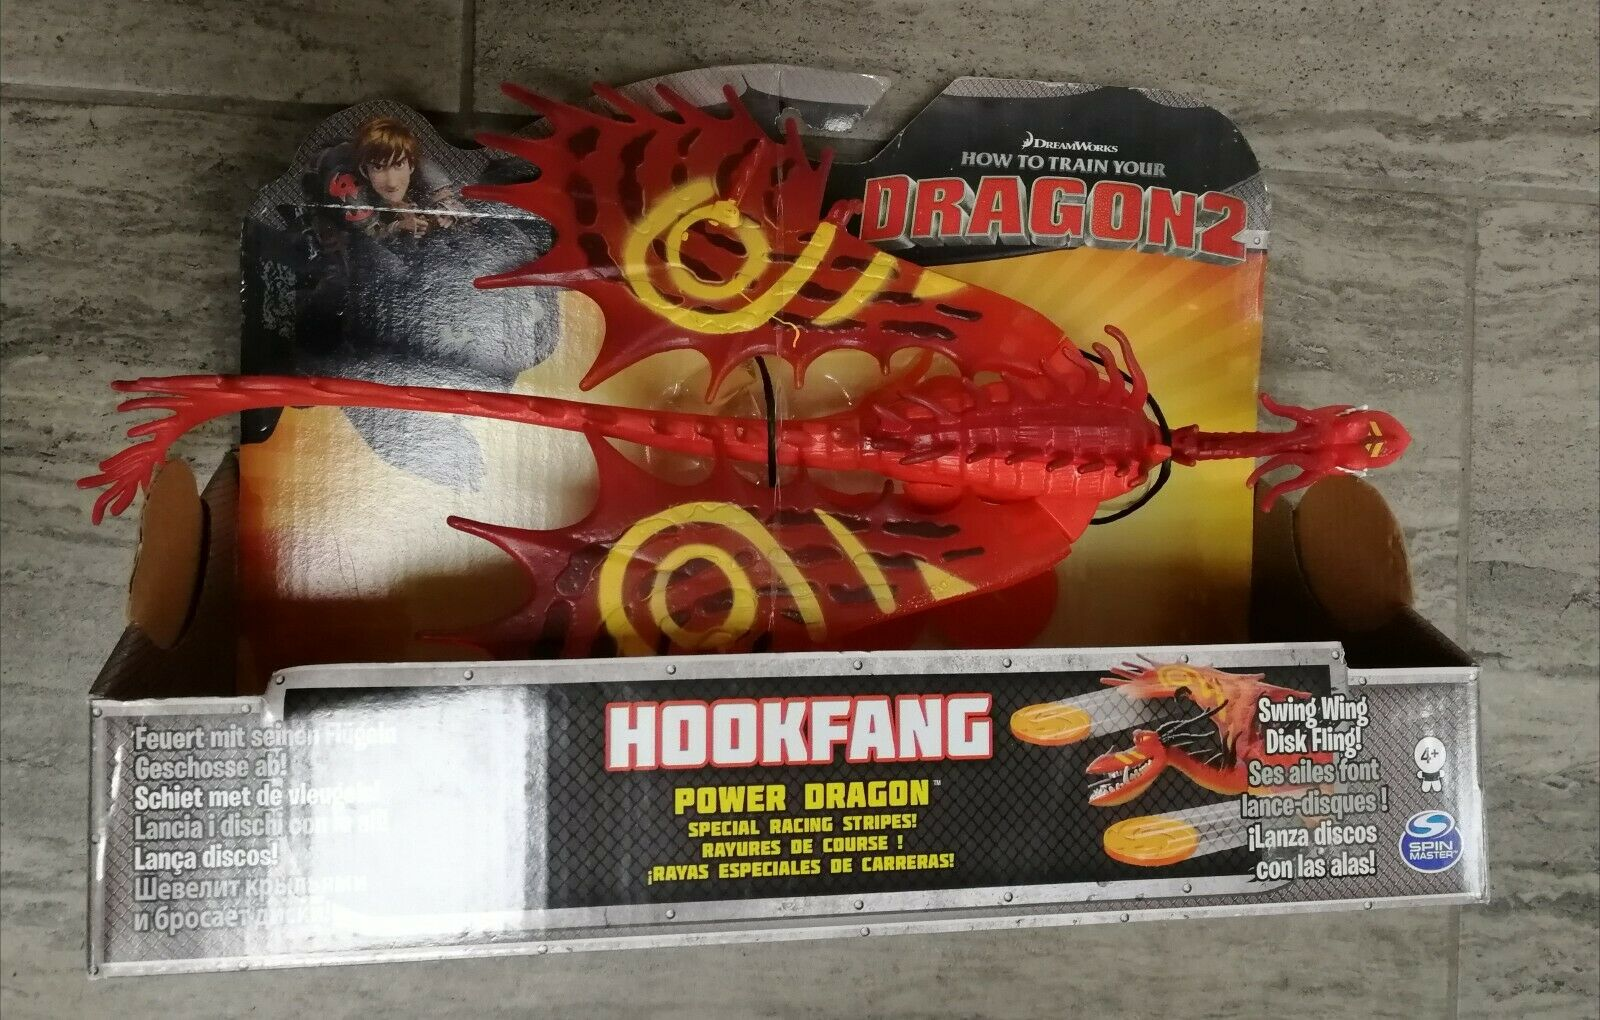 How To Train Your Dragon Power Dragon Hookfang Racing Stripes Figure Dreamworks